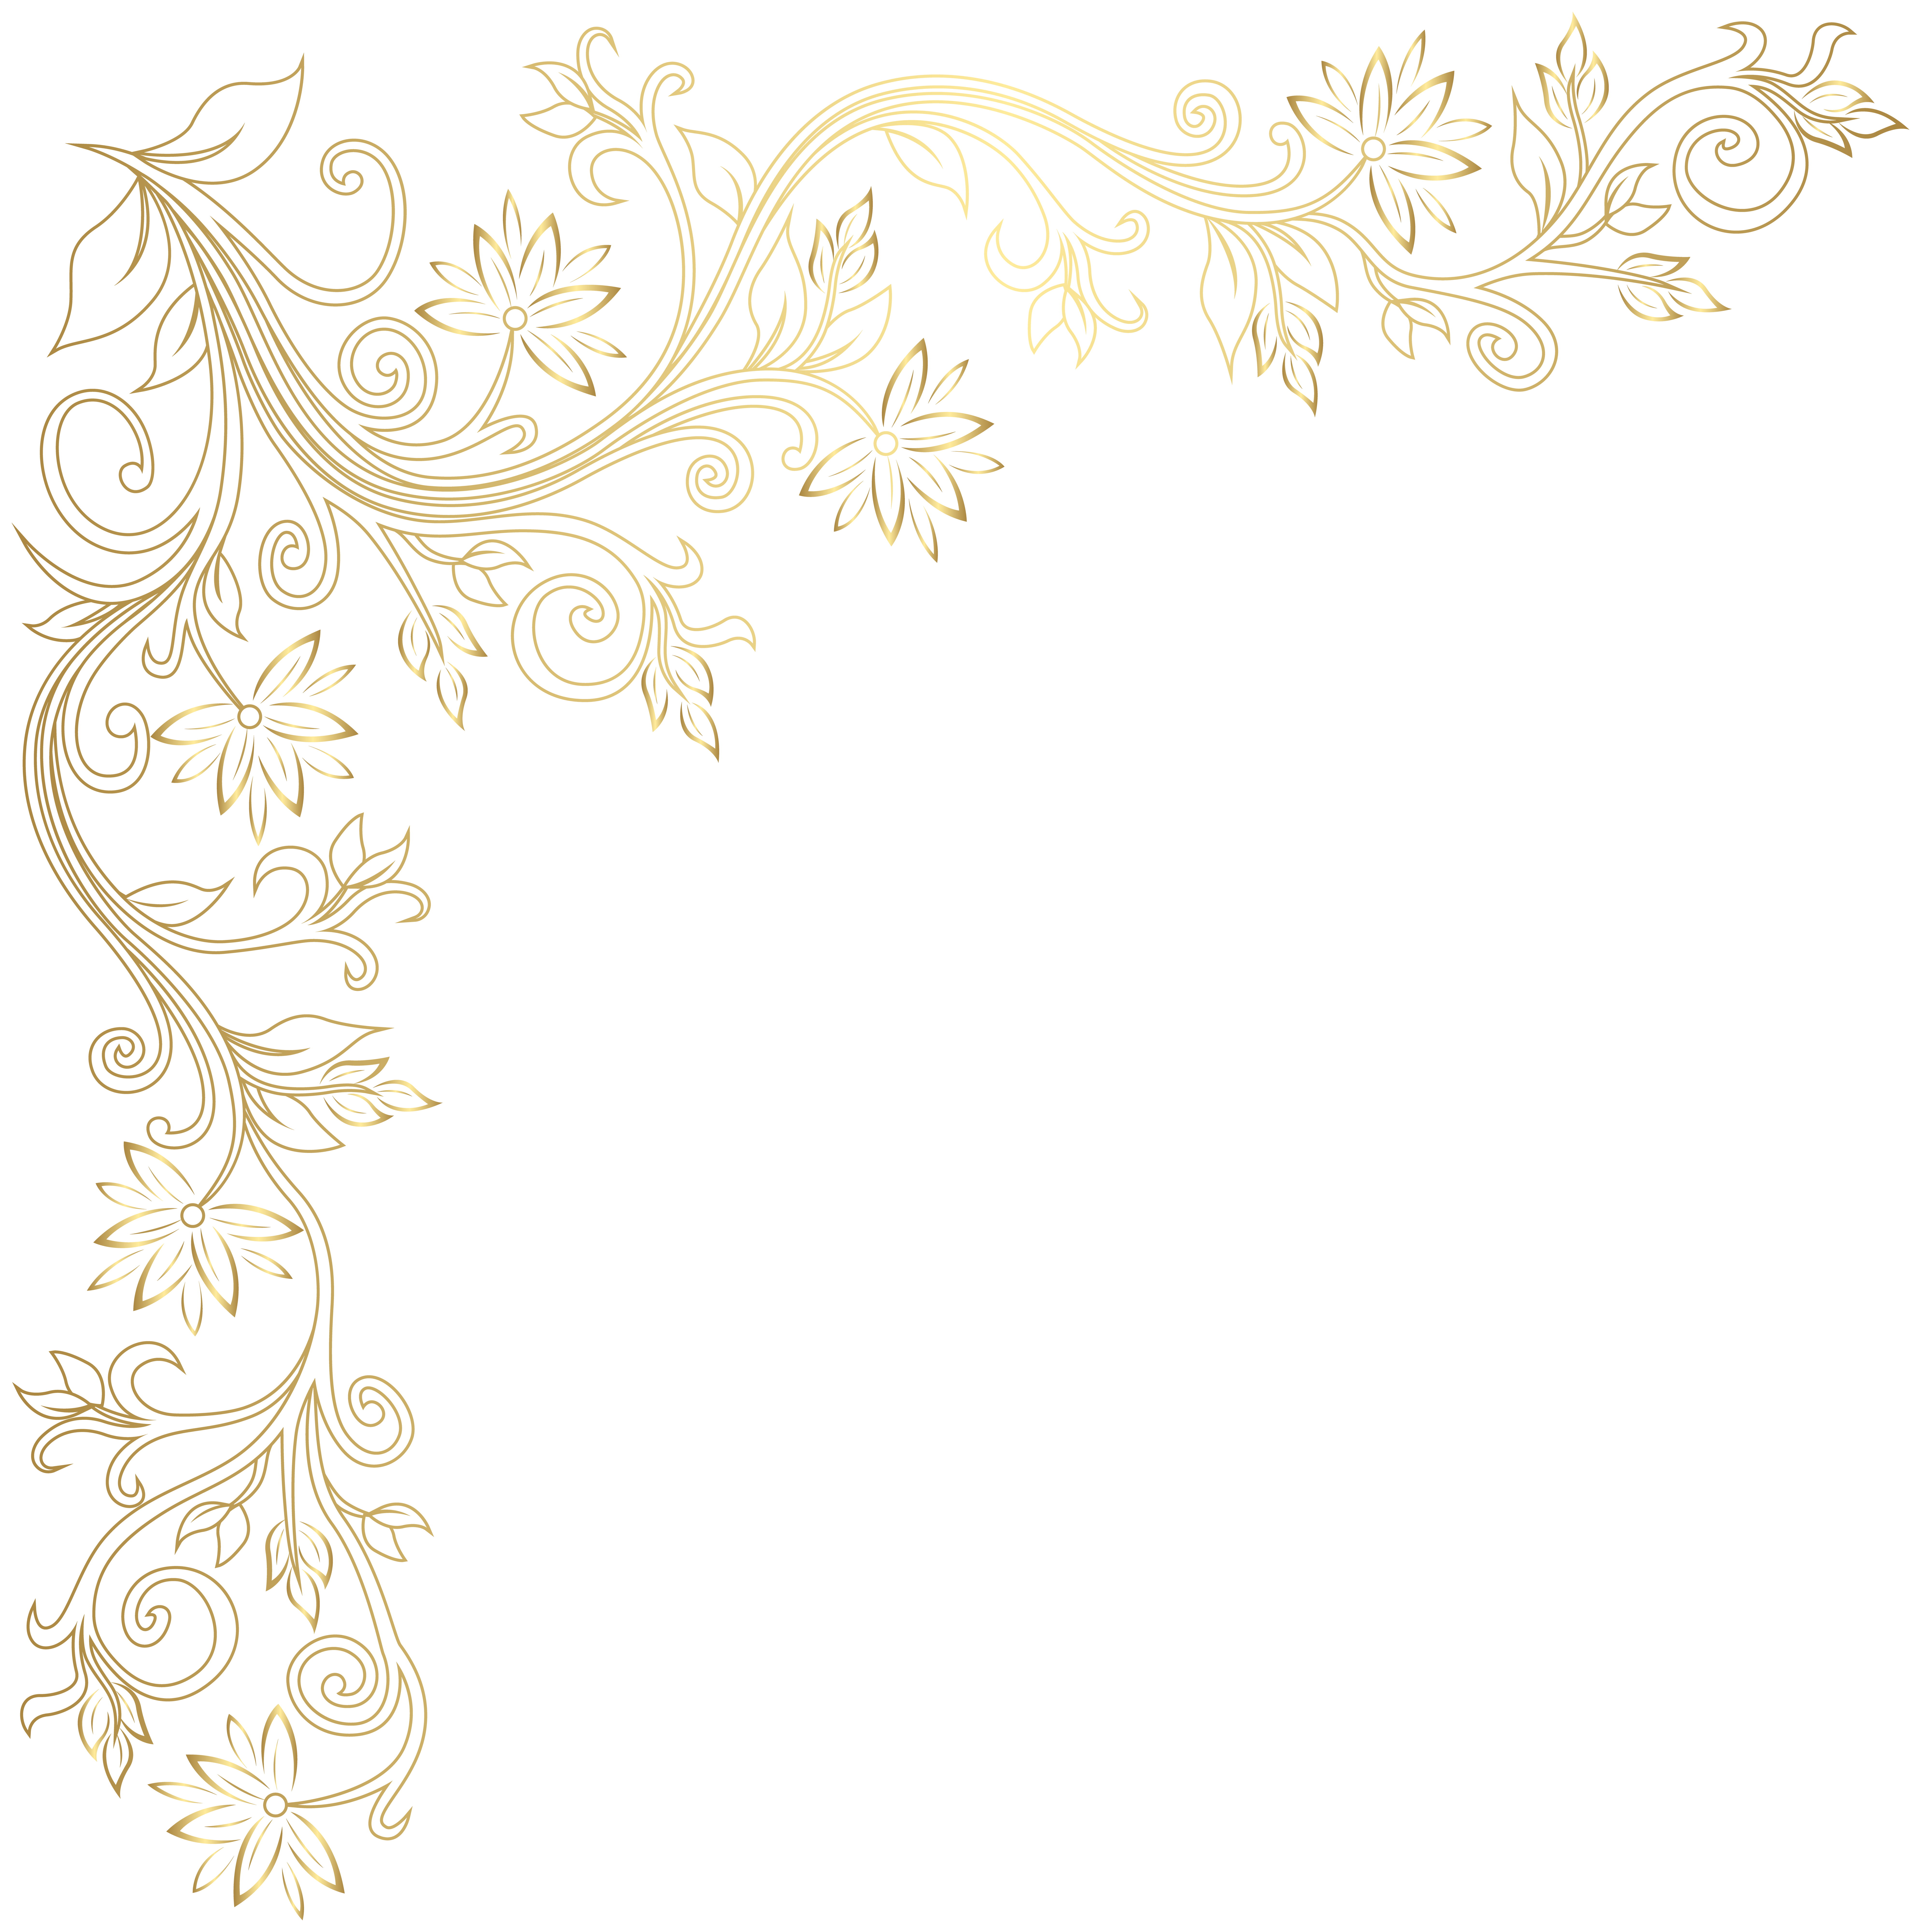 Corner transparent clipart. Gold image gallery yopriceville